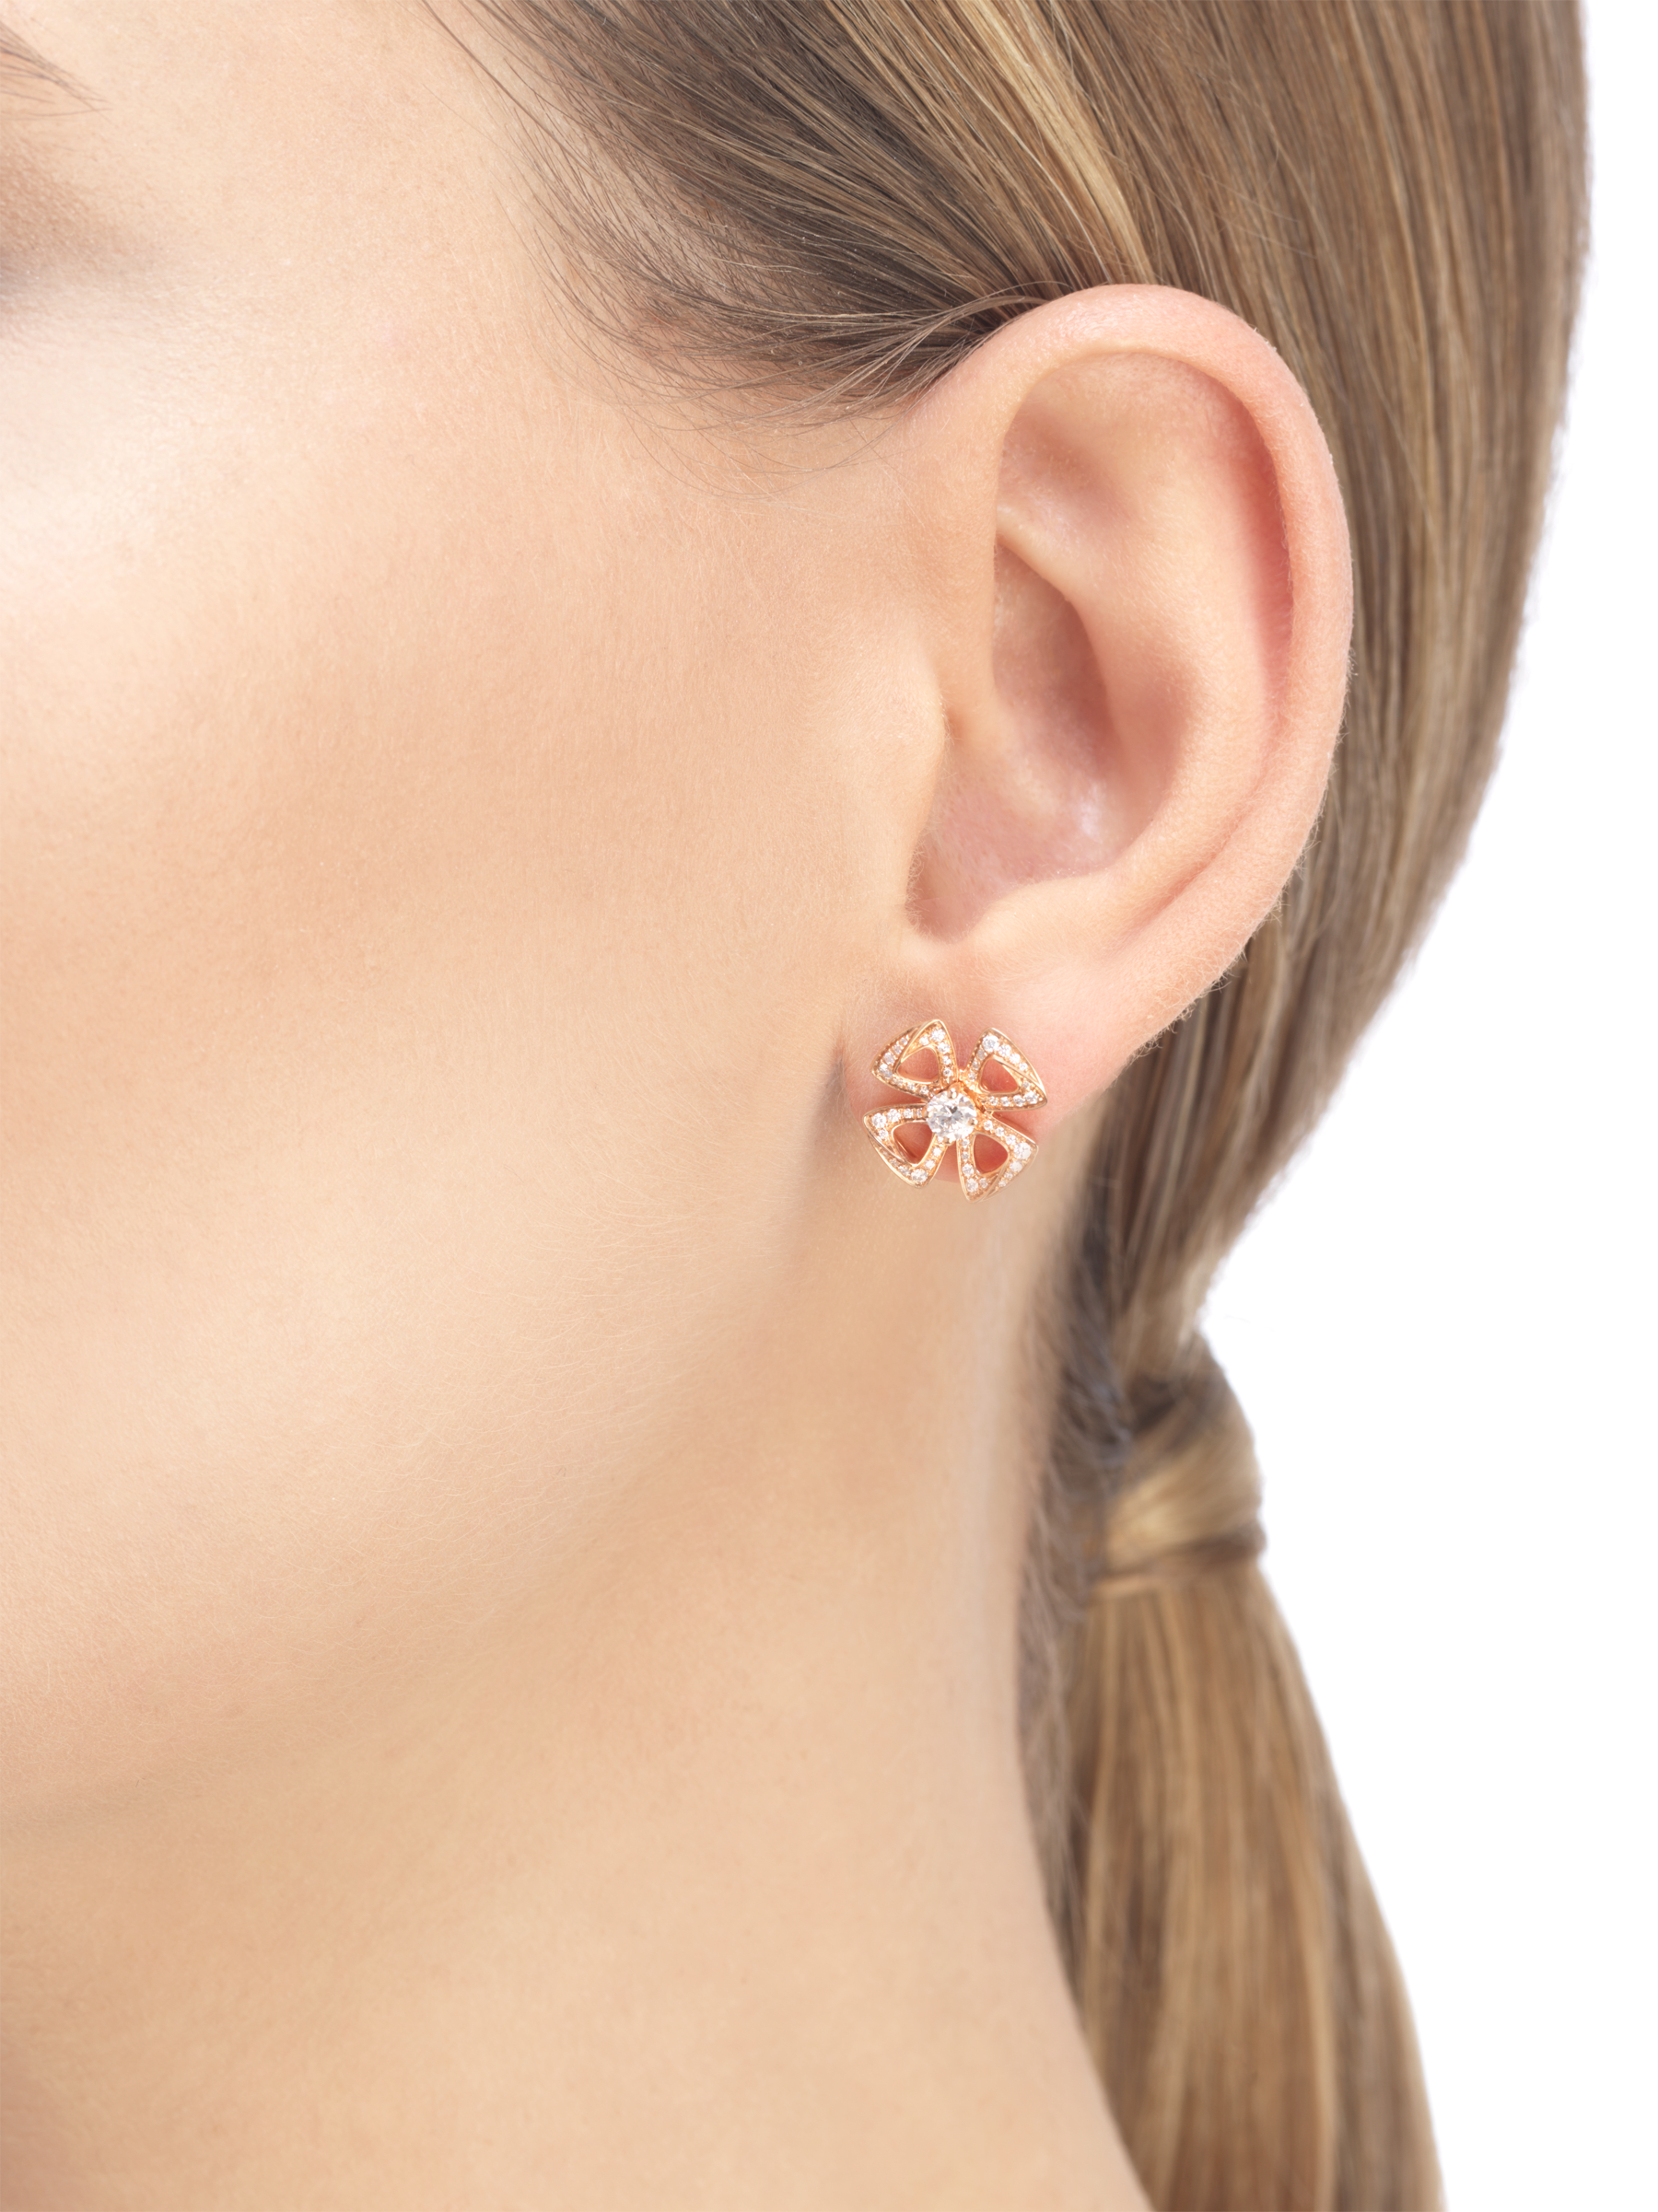 Fiorever 18 kt rose gold earrings set with two central diamonds (0.20 ct each) and pavé diamonds (0.33 ct) 355887 image 4